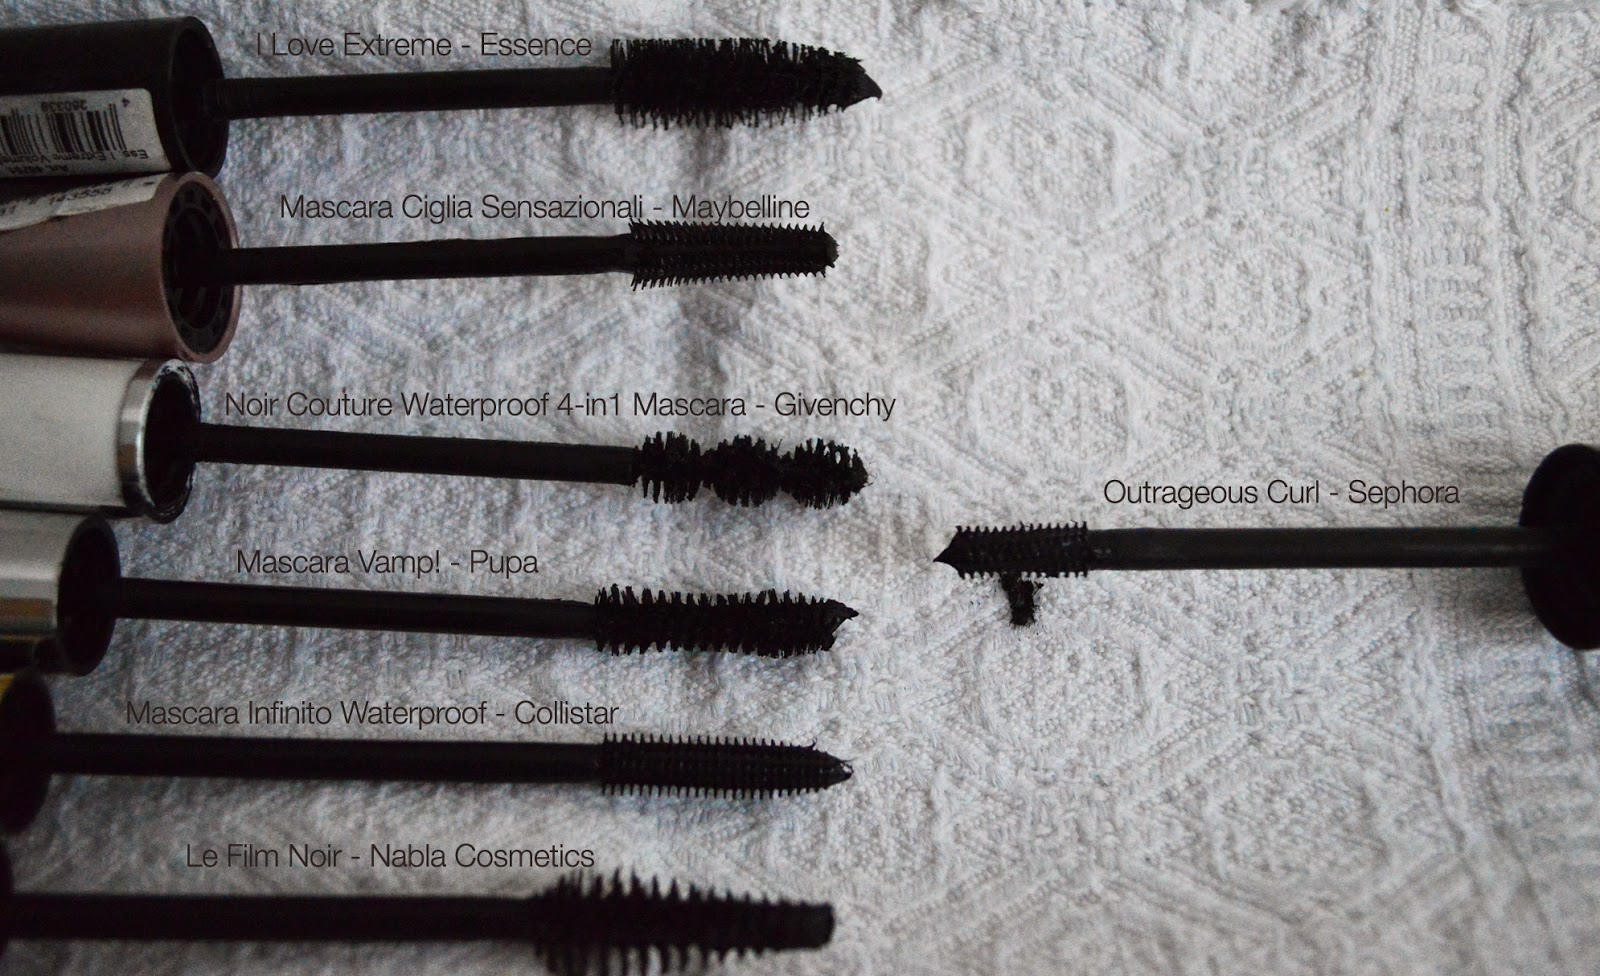 Review, Mascara Outrageous Curl, Sephora, I Love Extre, Essence, Mascara Ciglia Sensazionali, Maybelline, Noir Couture Waterproof 4in1, Givenchy, masca Vamp, Pupa, Mascara Infinito Waterproof, Collistar, Le Film Noir, Nabla Cosmetics,Cherry Diamond Lips